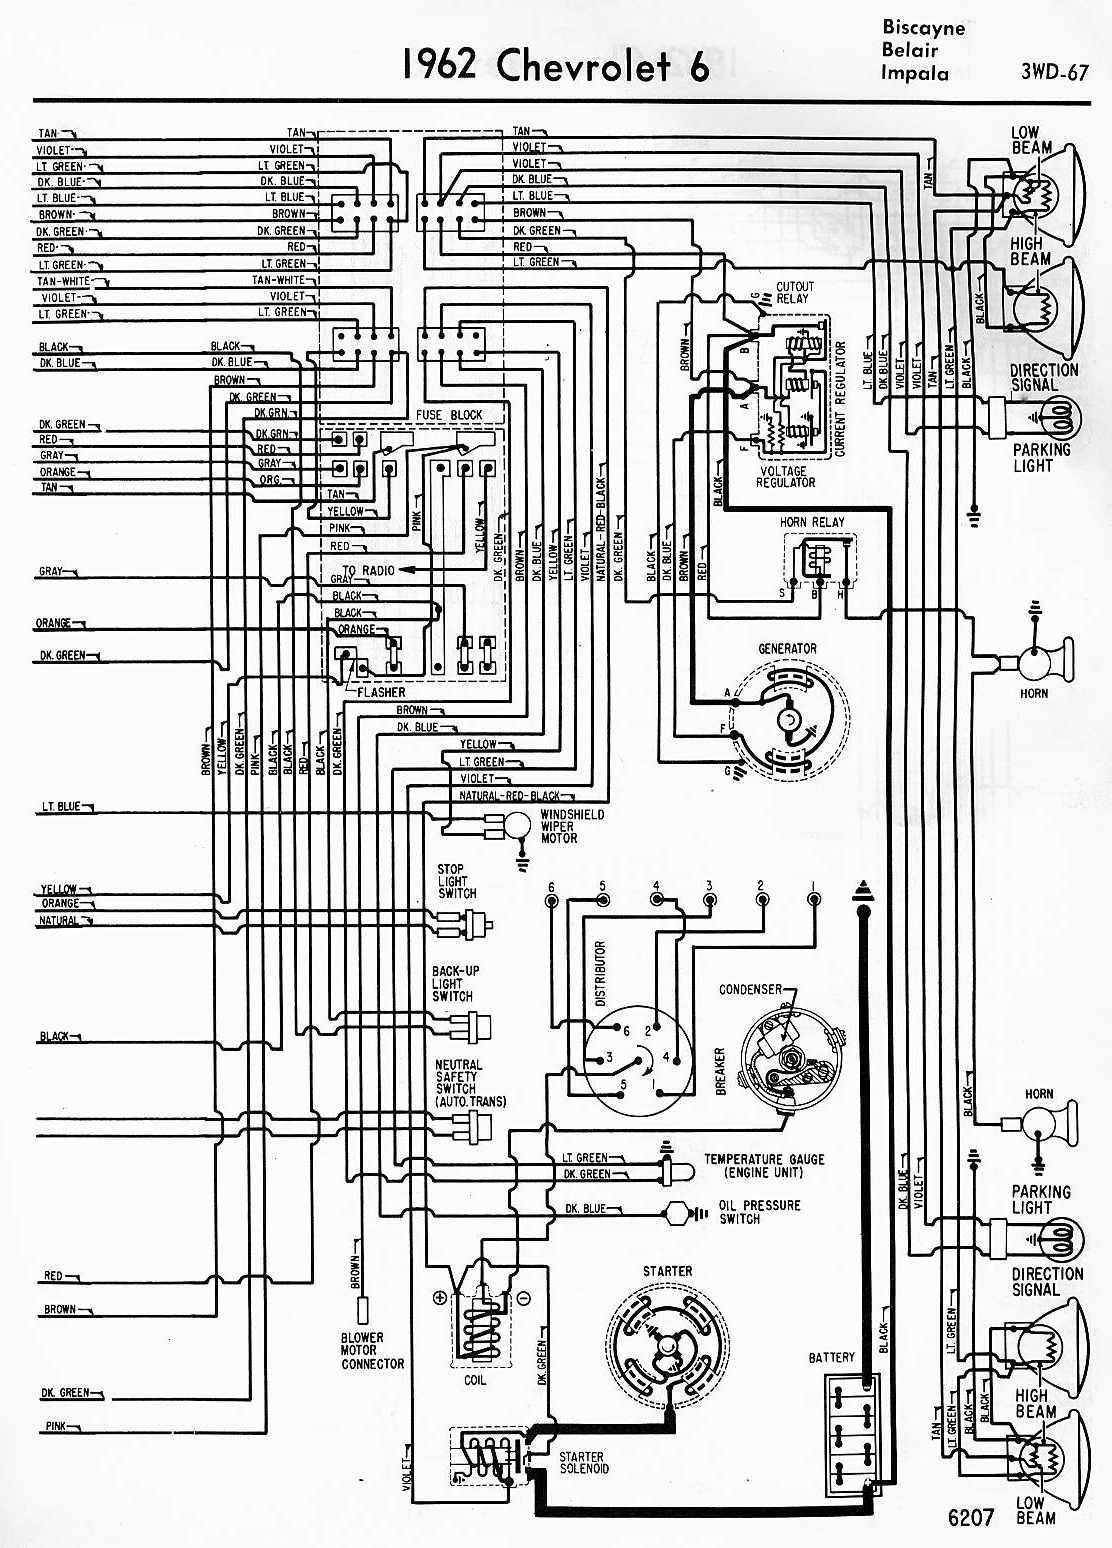 small resolution of 1964 impala wiper wiring diagram wiring diagram technic64 chevy wiper wiring diagram wiring diagrams konsult64 chevy